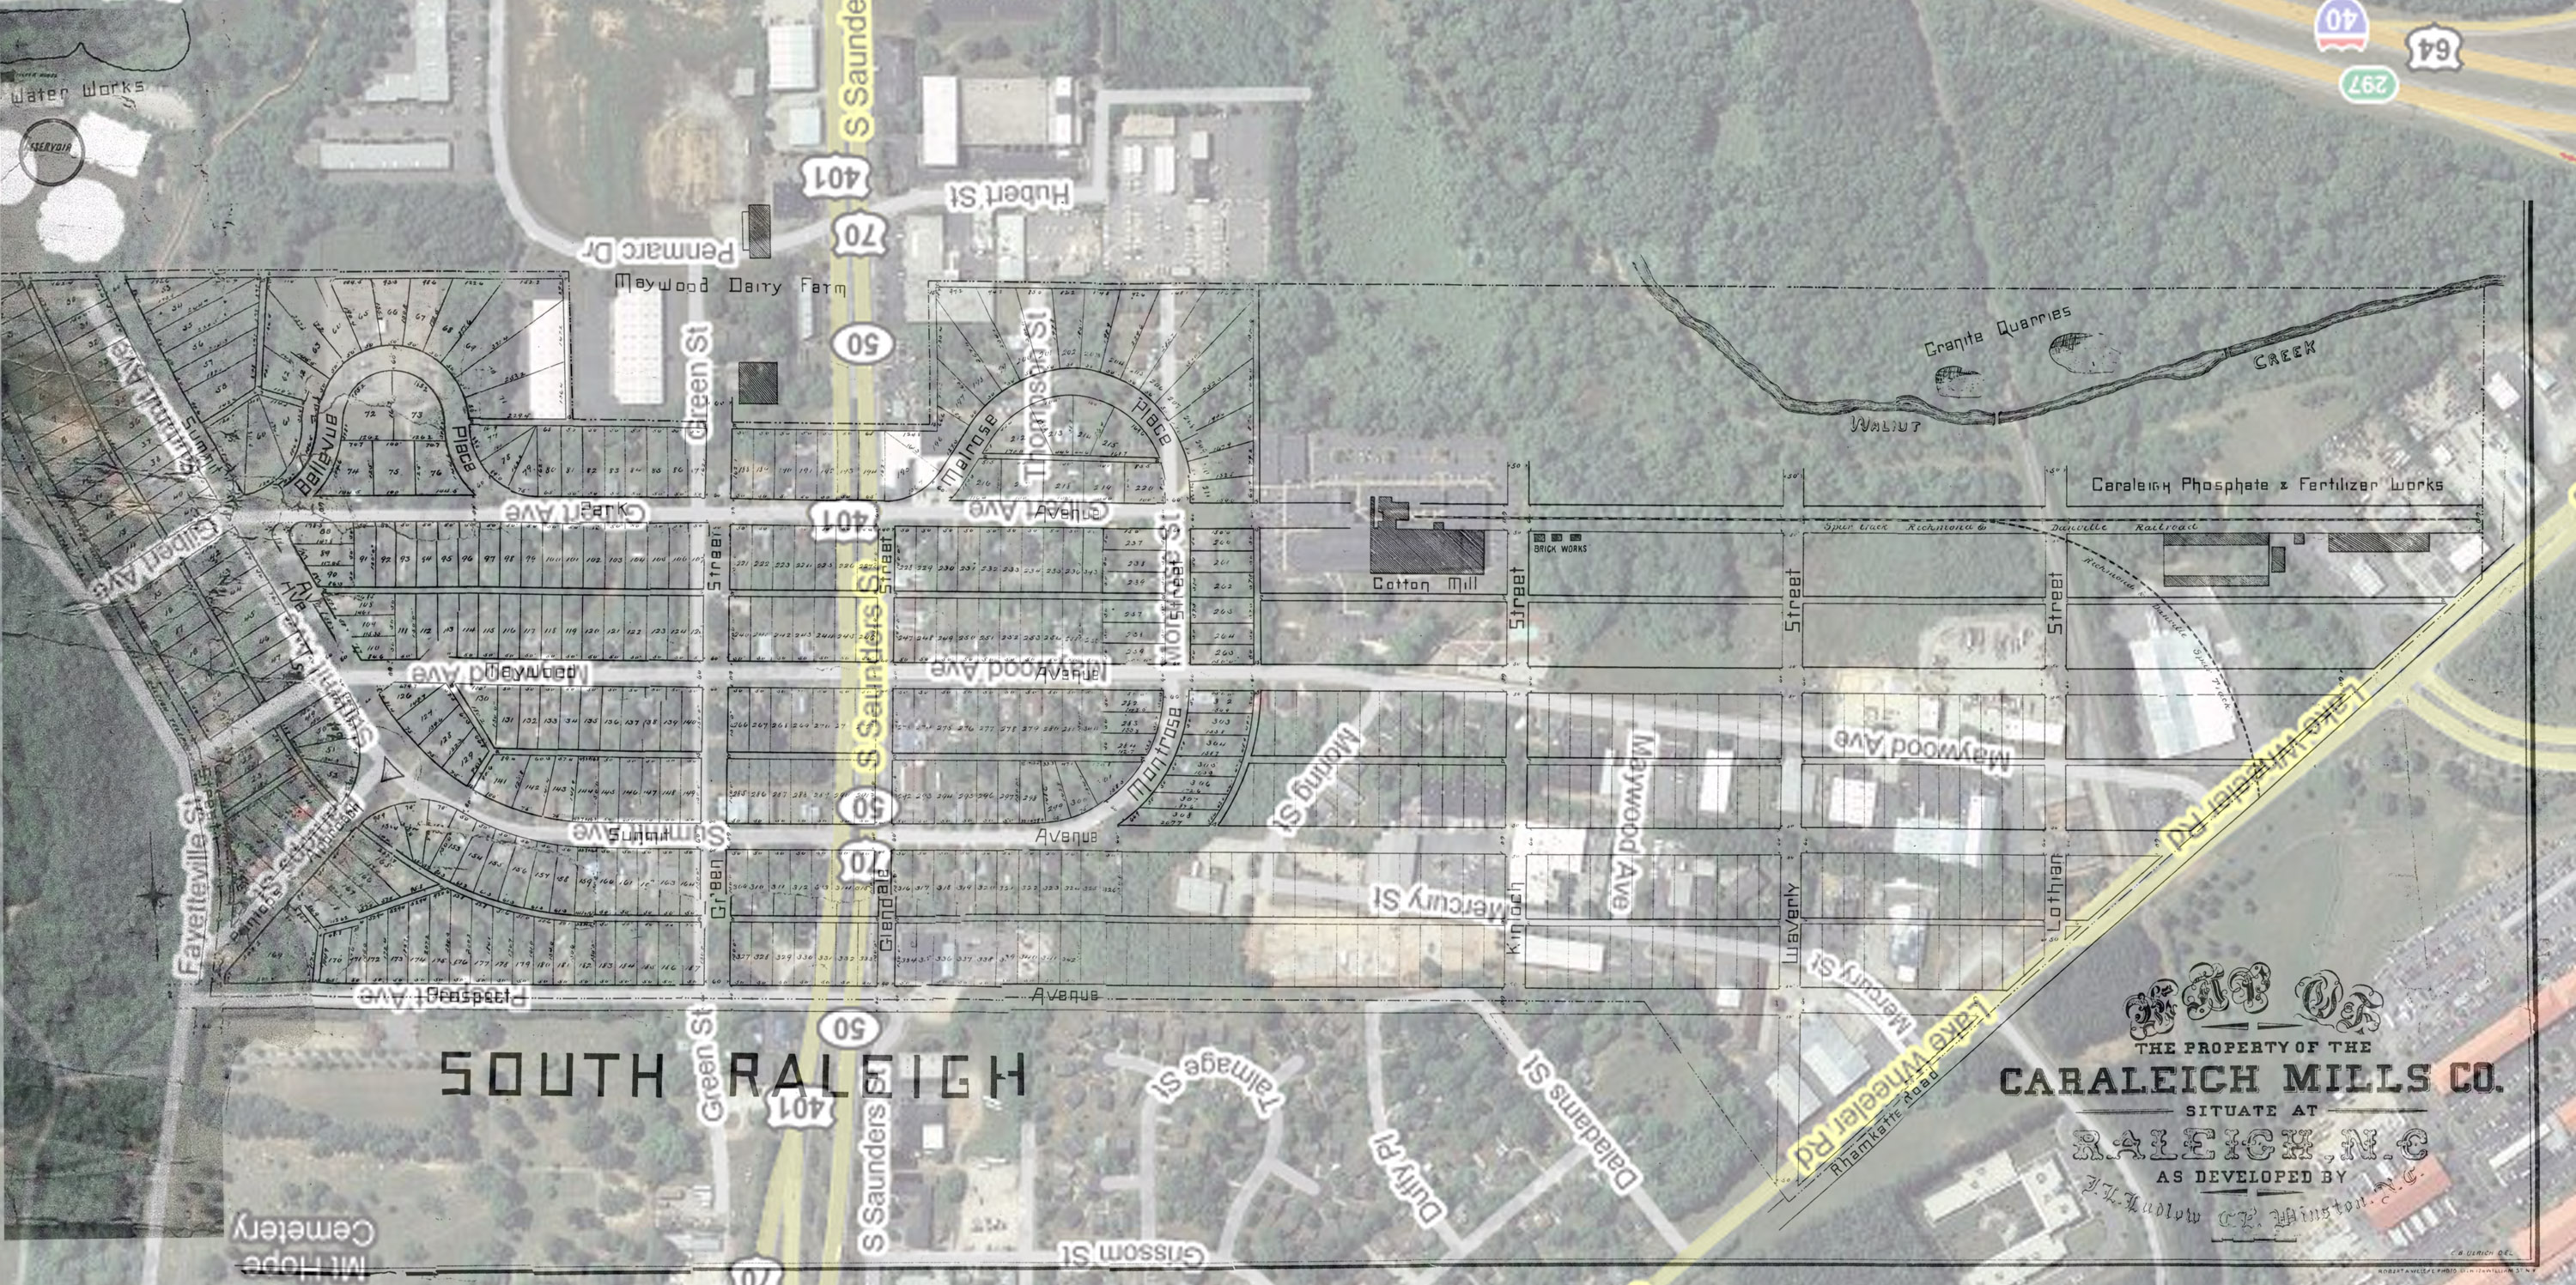 Old Map of Caraleigh - Legeros Fire Blog Archives 2006-2015